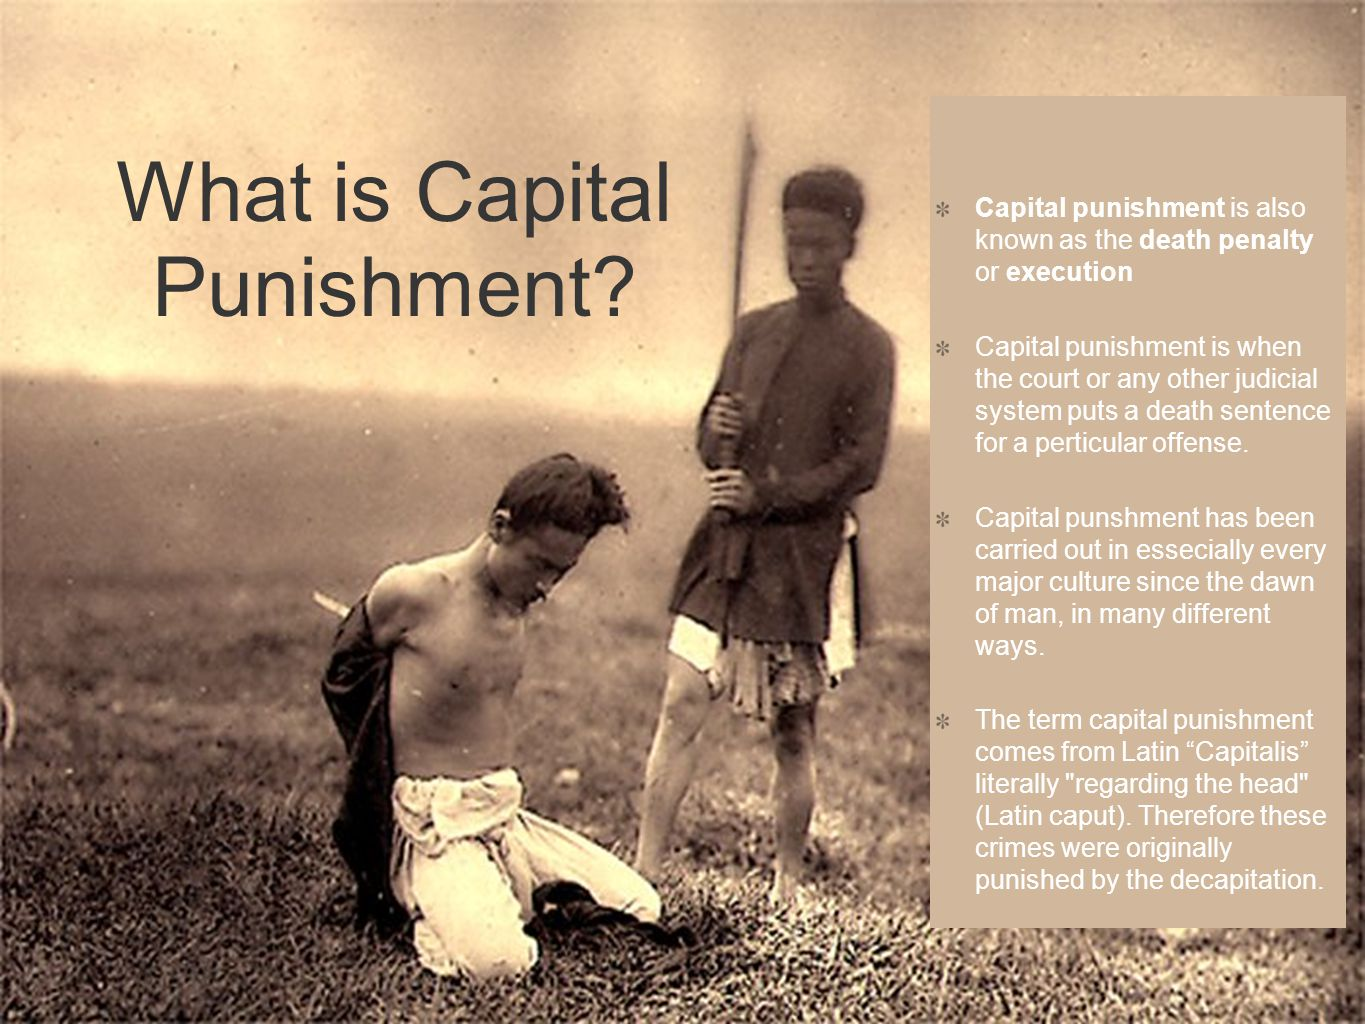 toulmin analysis on capital punishment: society�s self-defense by amber young Success profile what makes a successful marketing specialist at hp check out the top traits were looking for and see if you have the right mix.